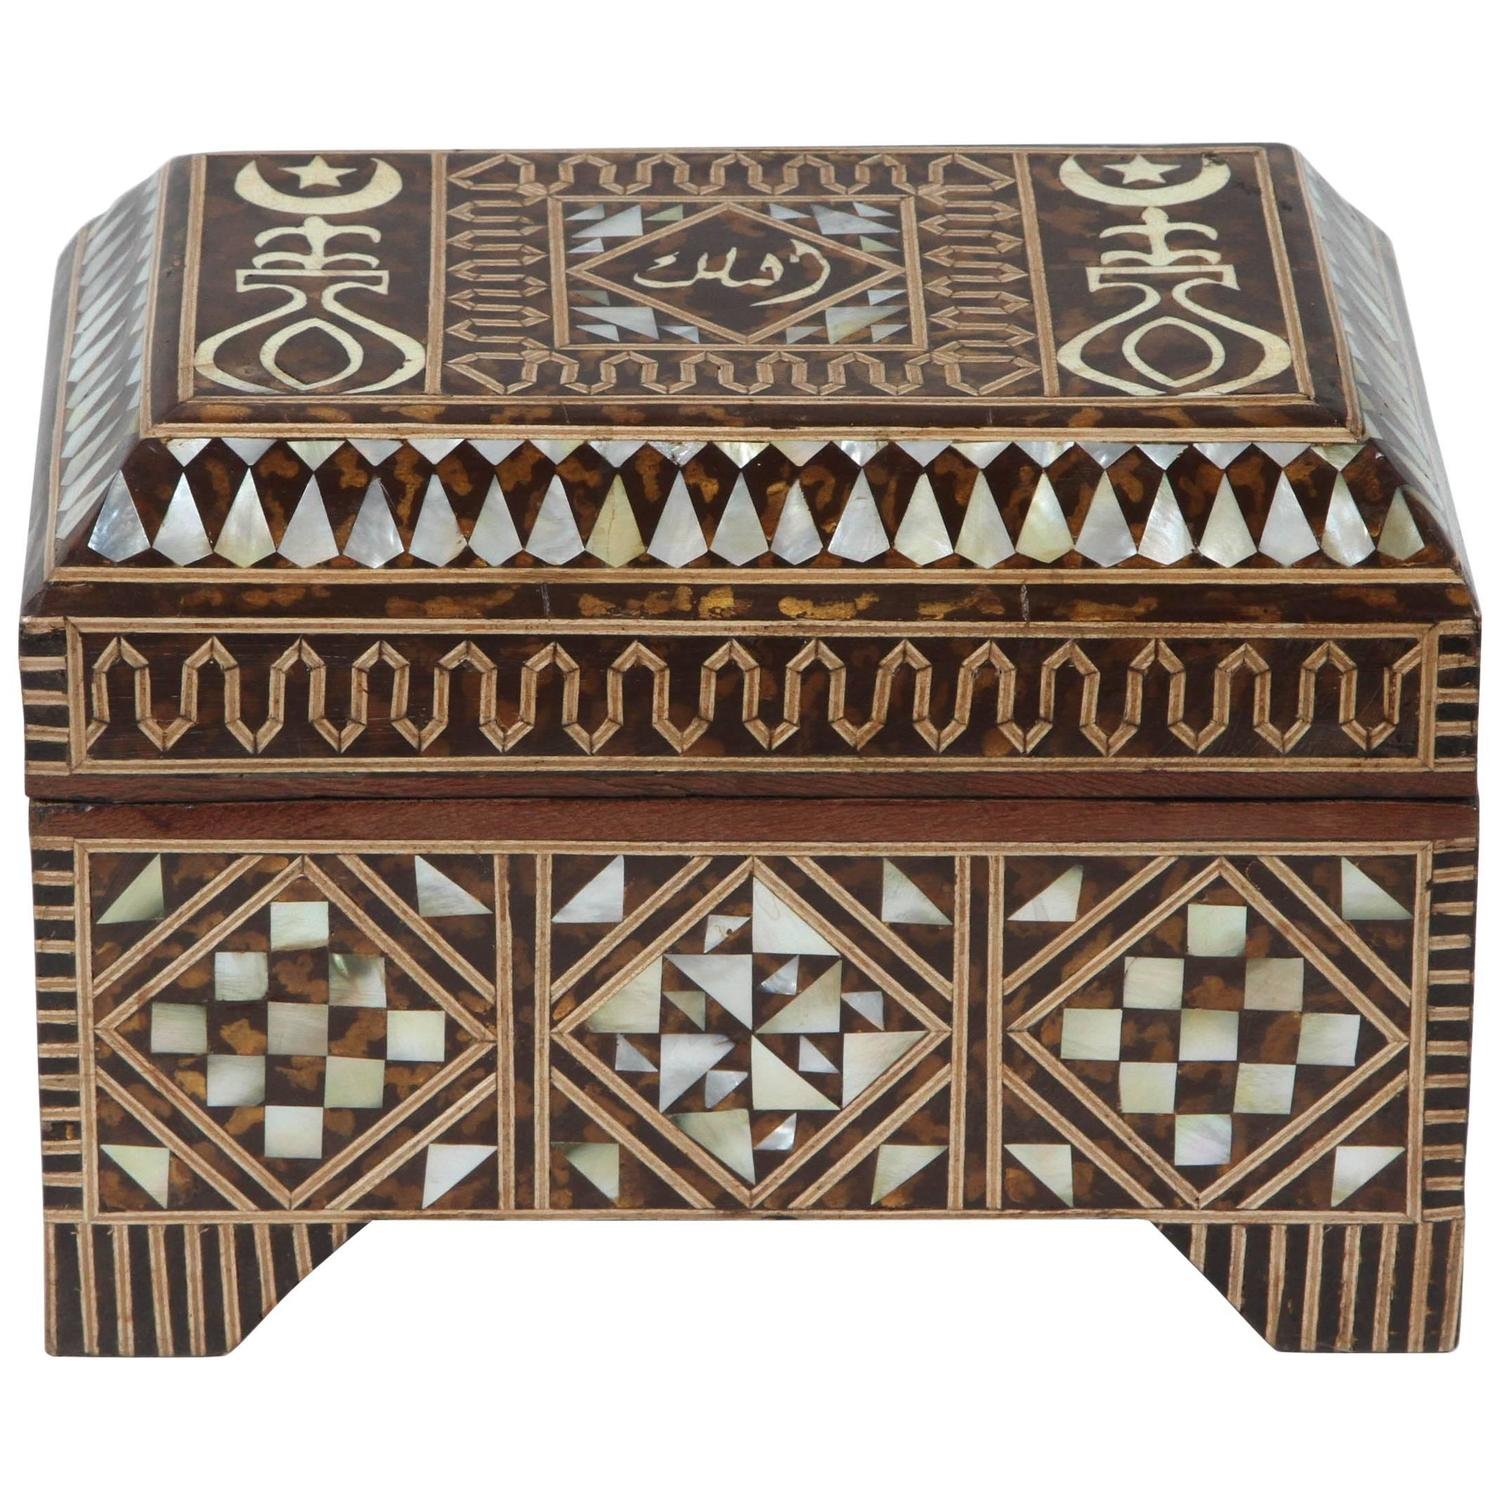 Instyle Decor Com Beverly Hills Beautiful Mother Of Pearl: Large Mother-of-Pearl Inlaid Jewelry Box For Sale At 1stdibs